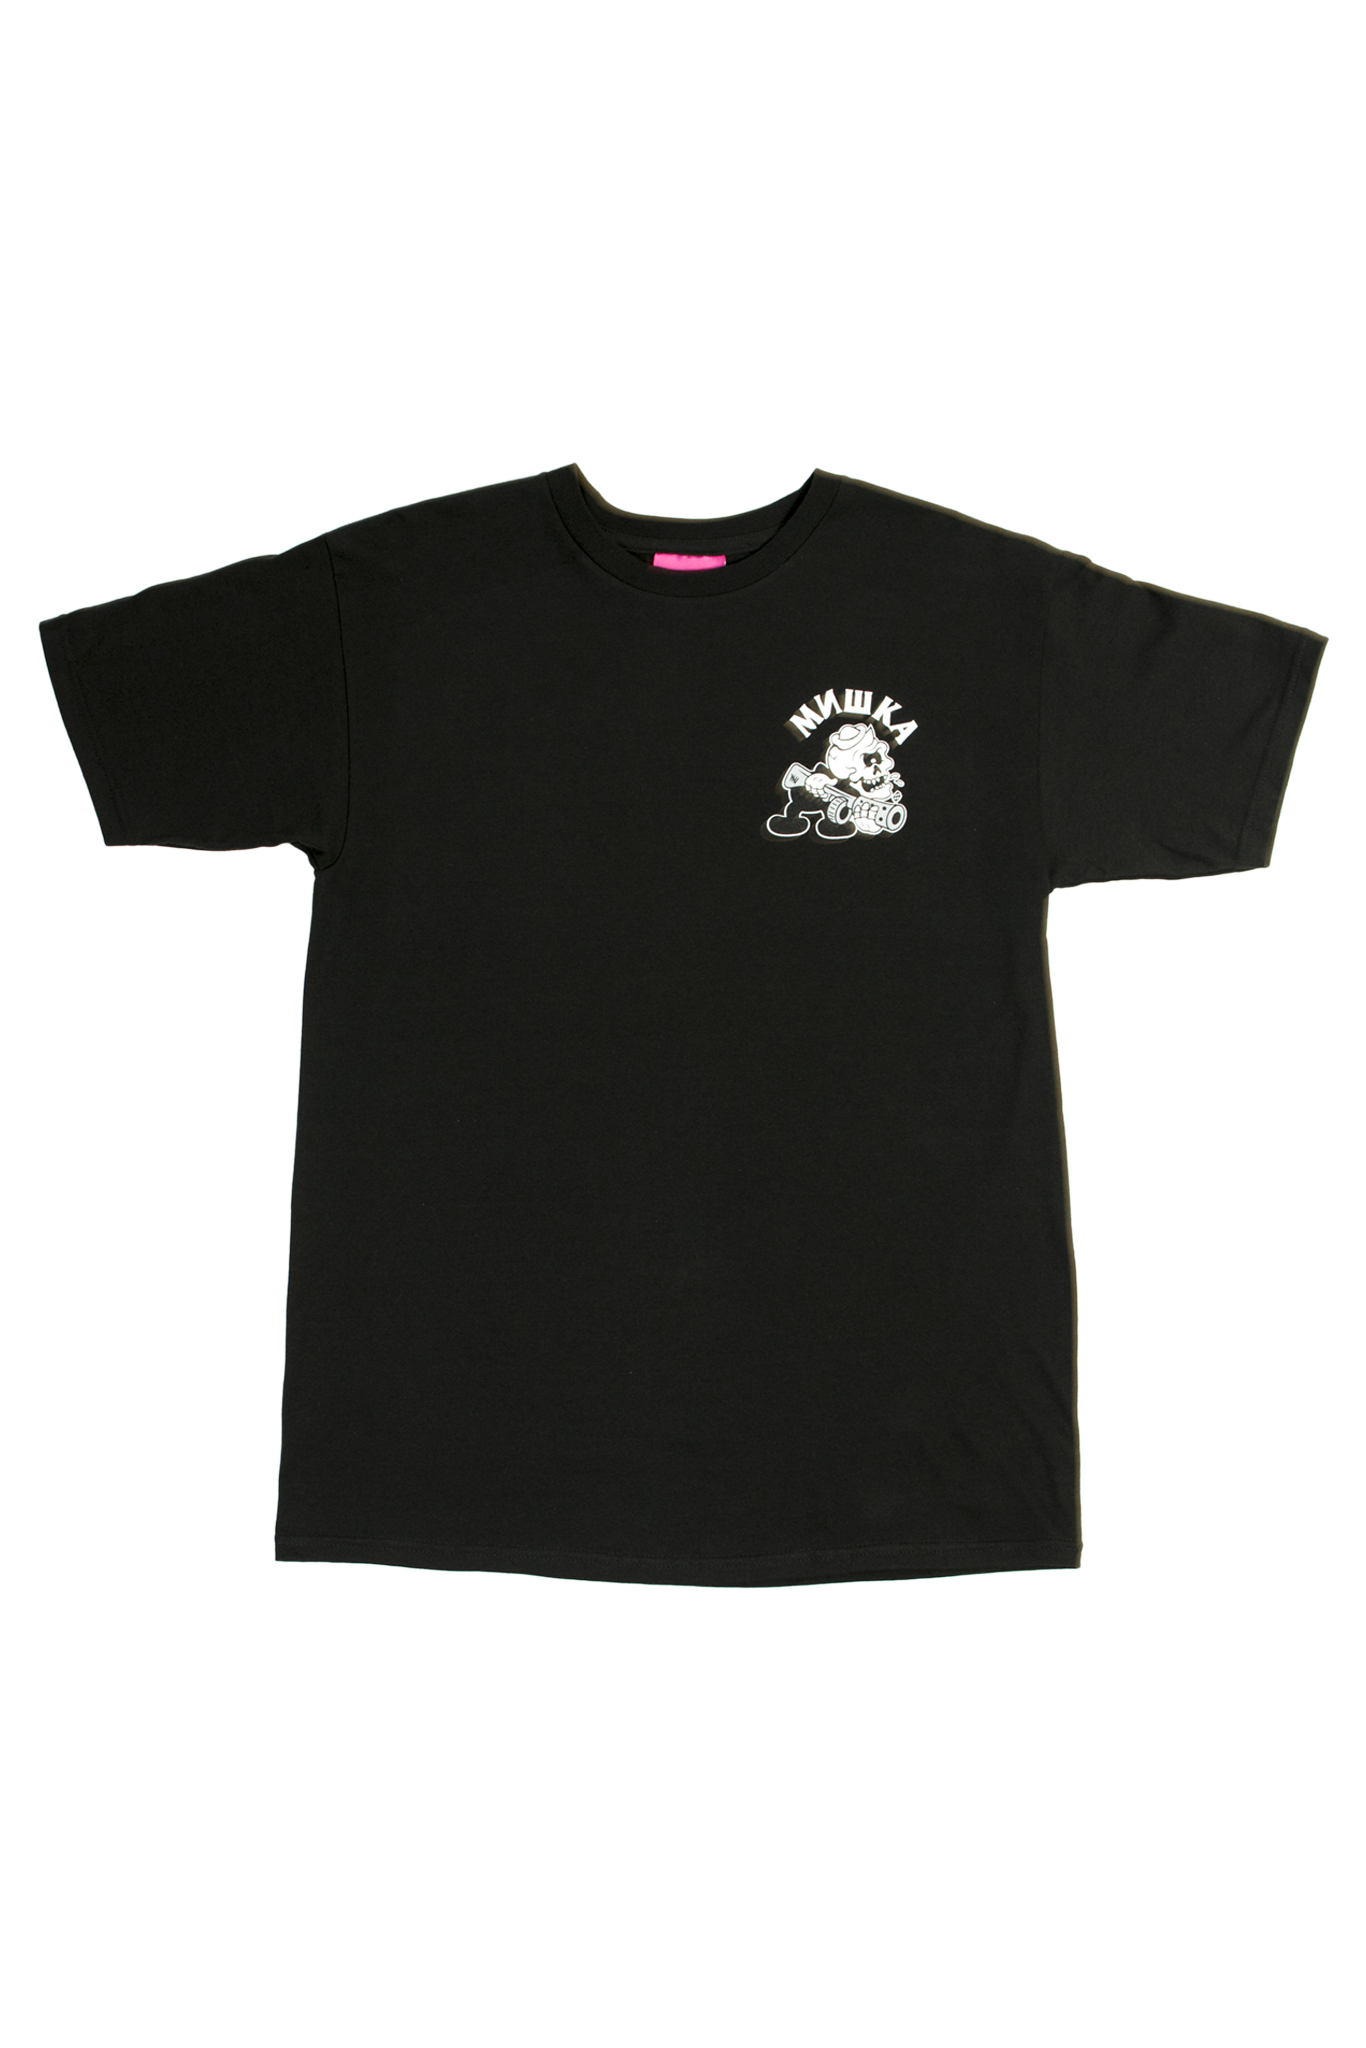 We Get Ours T-Shirt